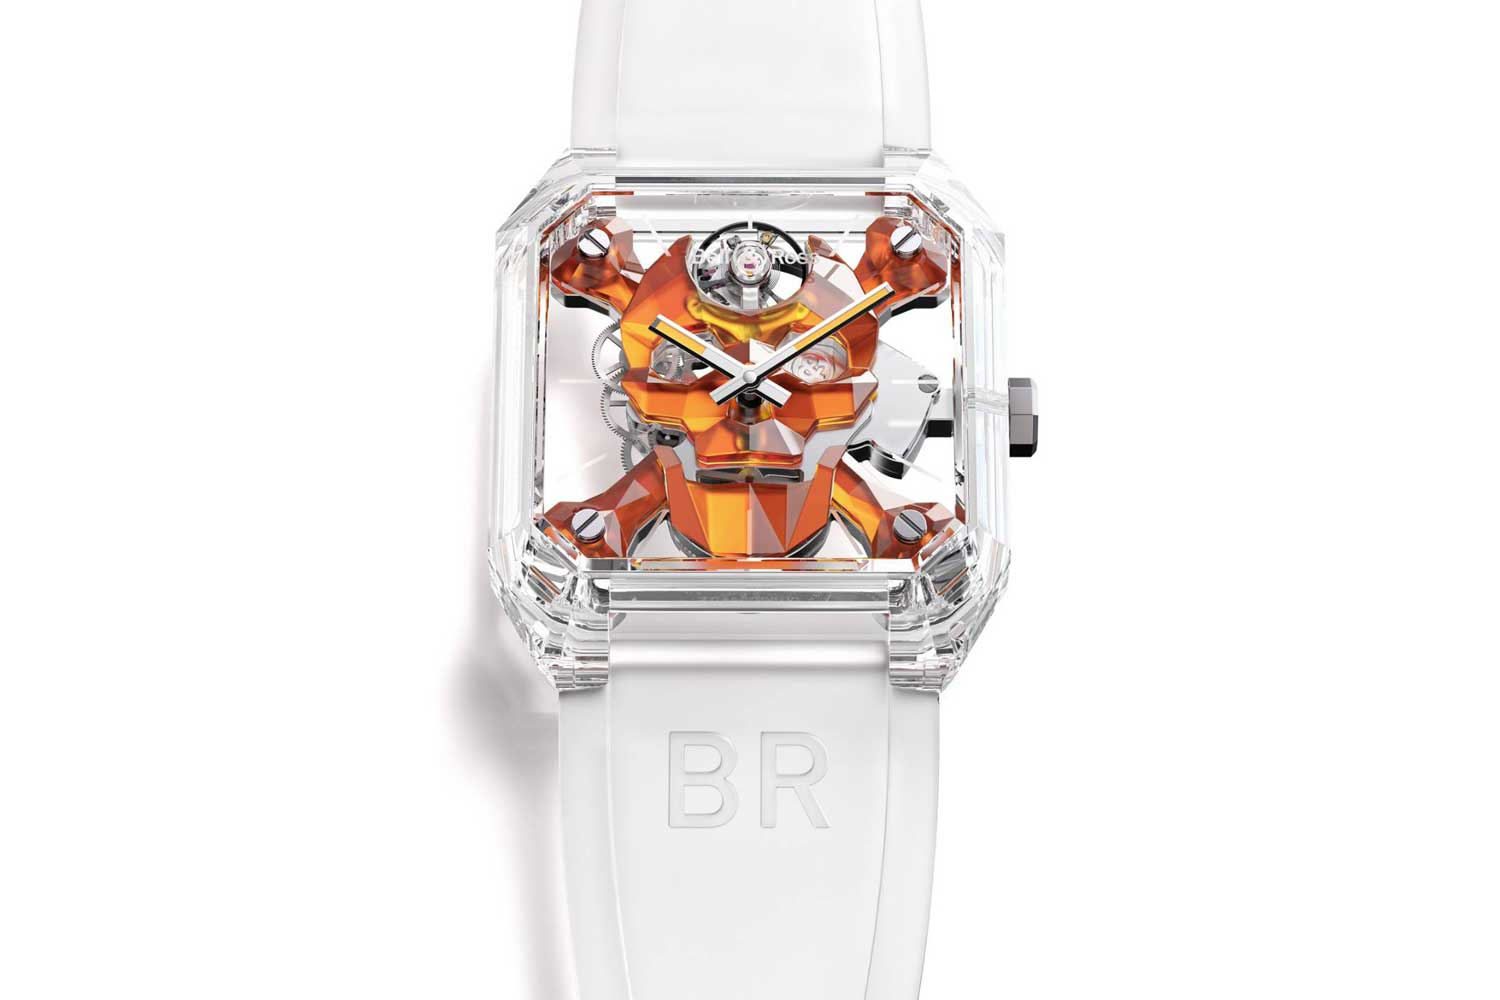 BR 01 CYBER SKULL SAPPHIRE ONLY WATCH